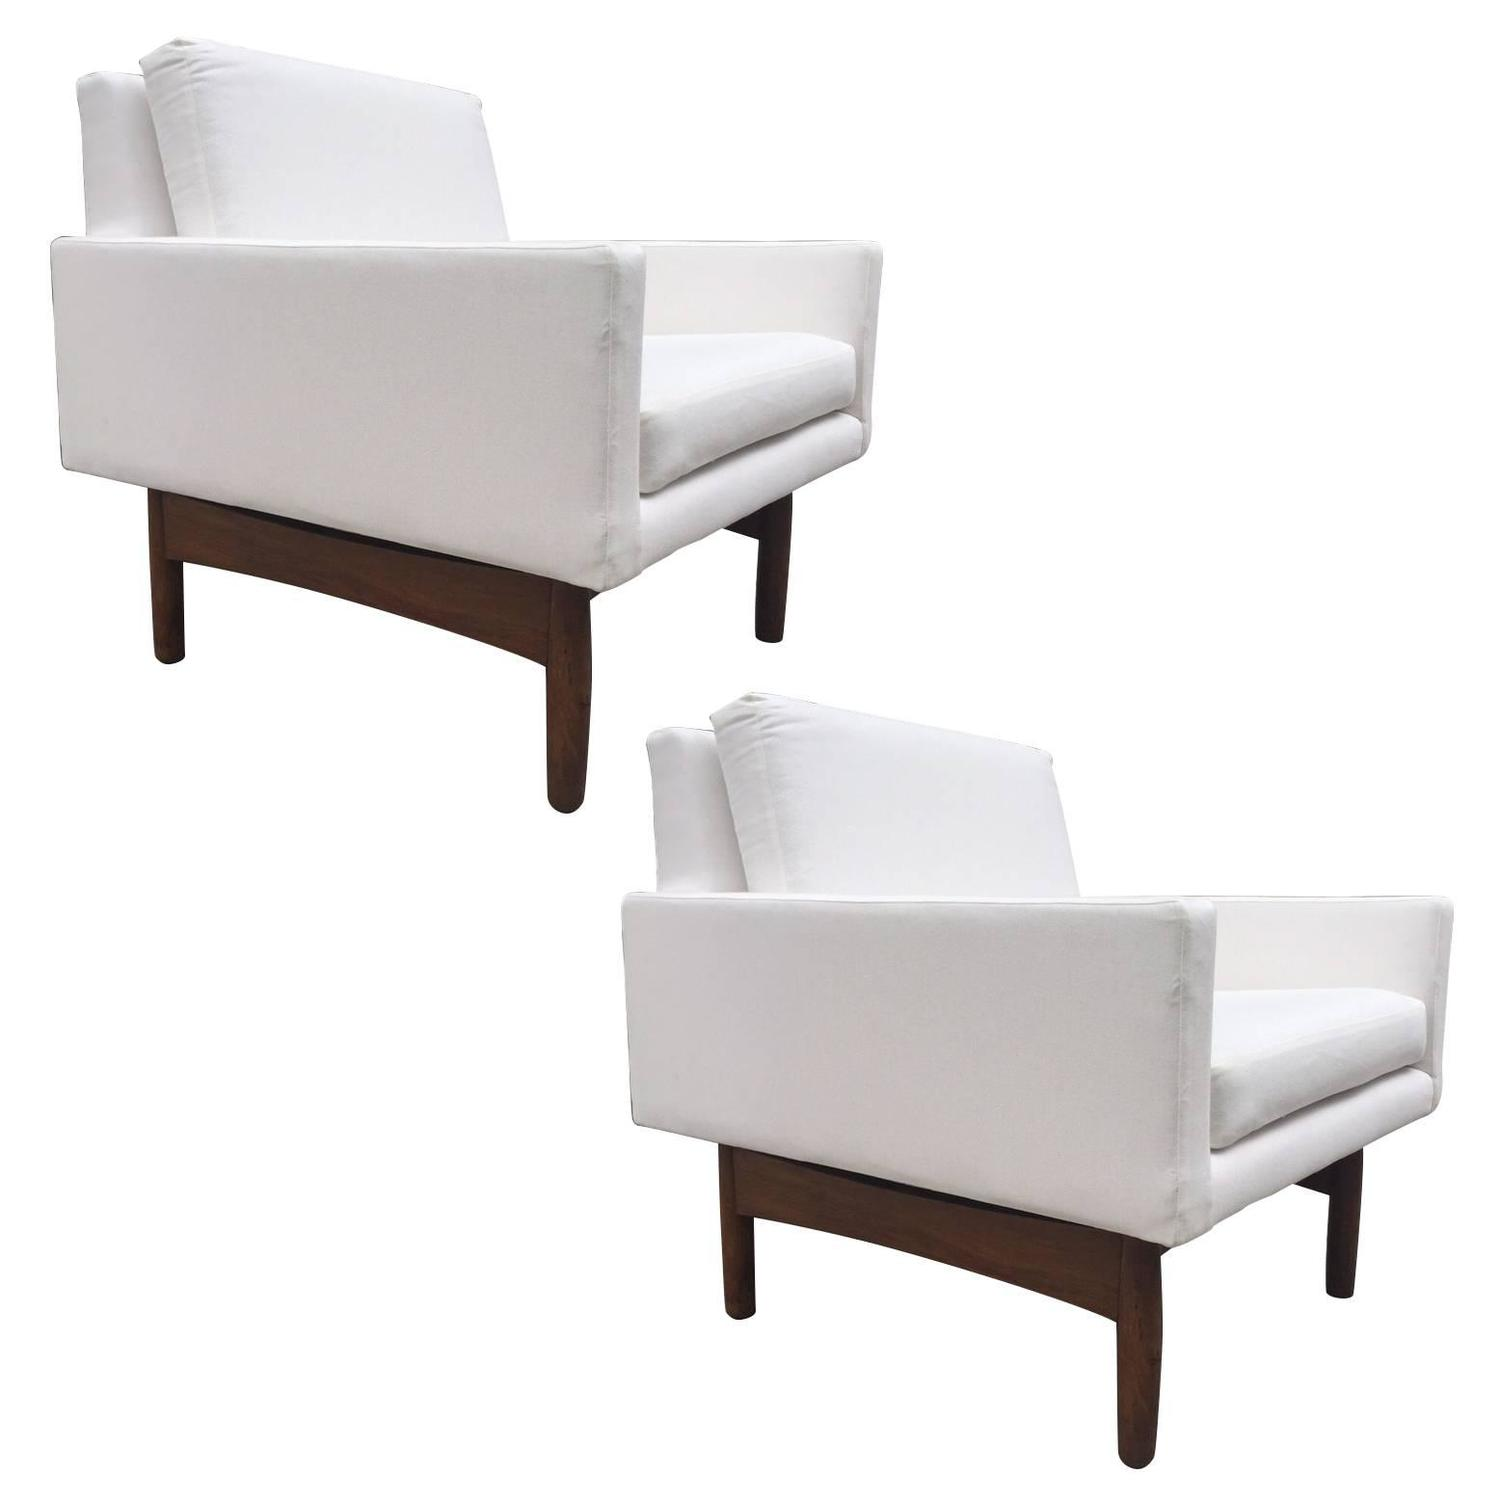 Pair Of Jens Risom Lounge Chairs For Sale At 1stdibs